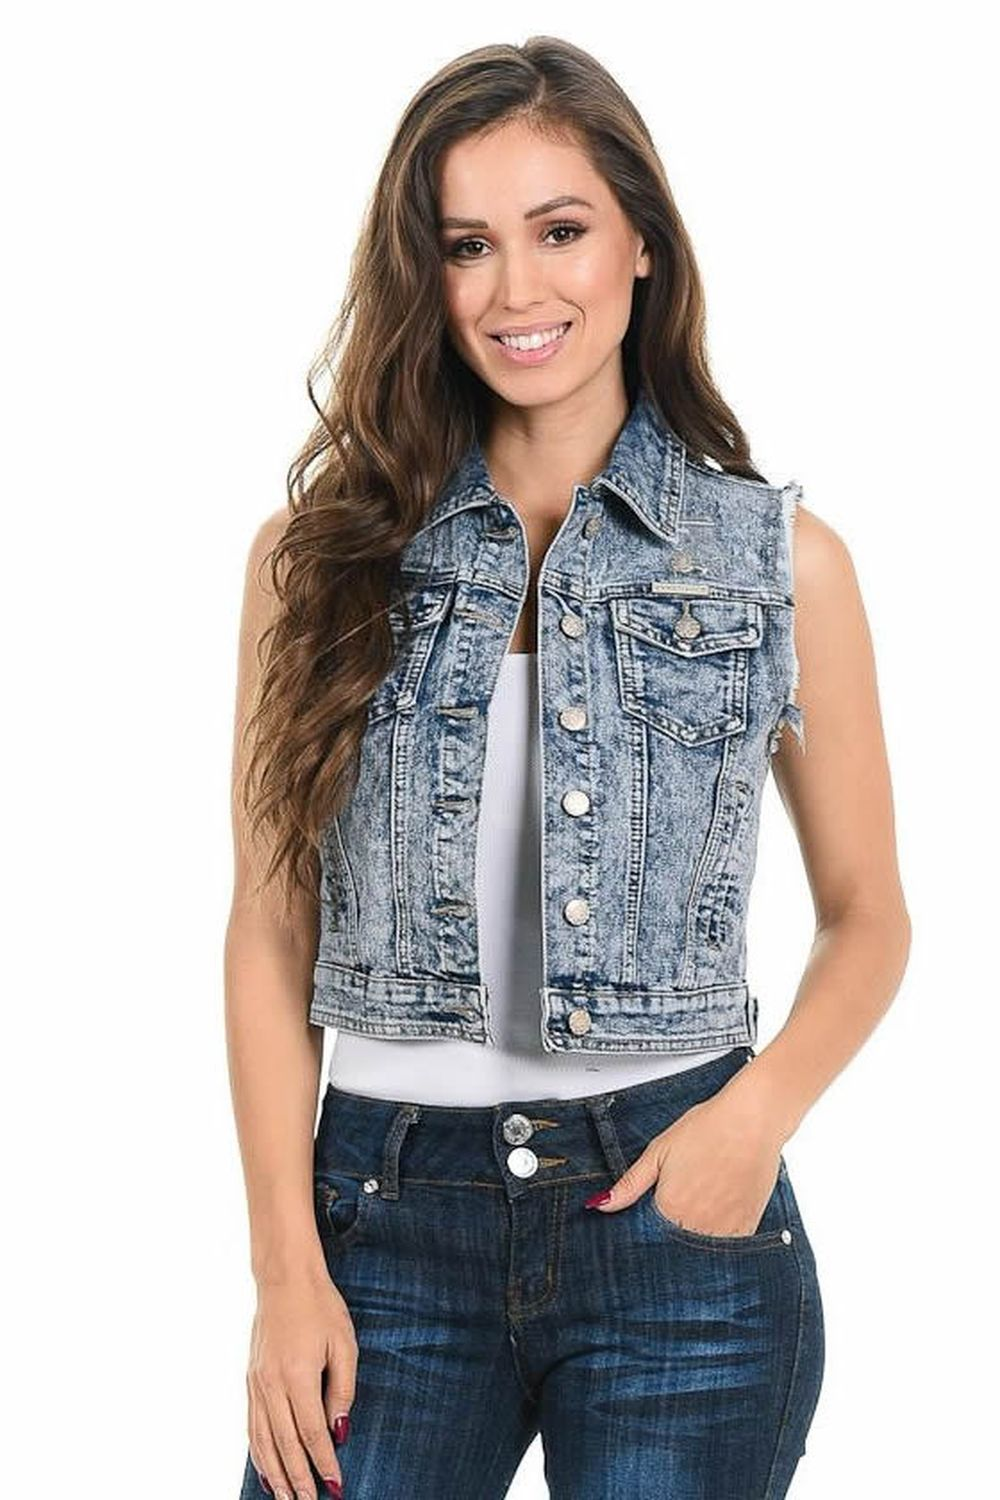 Sweet Look Women's Denim Vest - Style 933